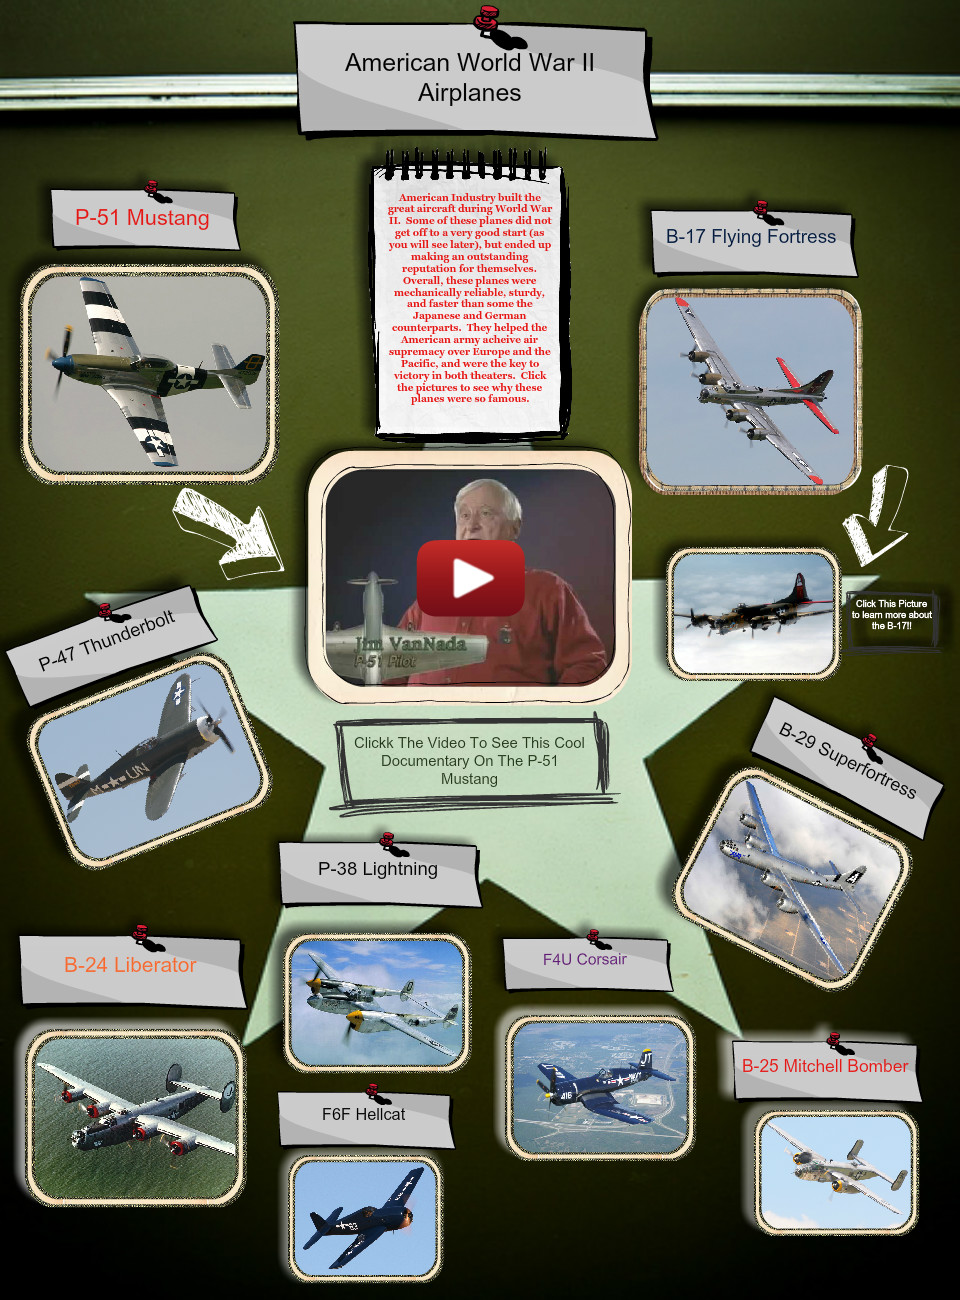 WWII Airplanes